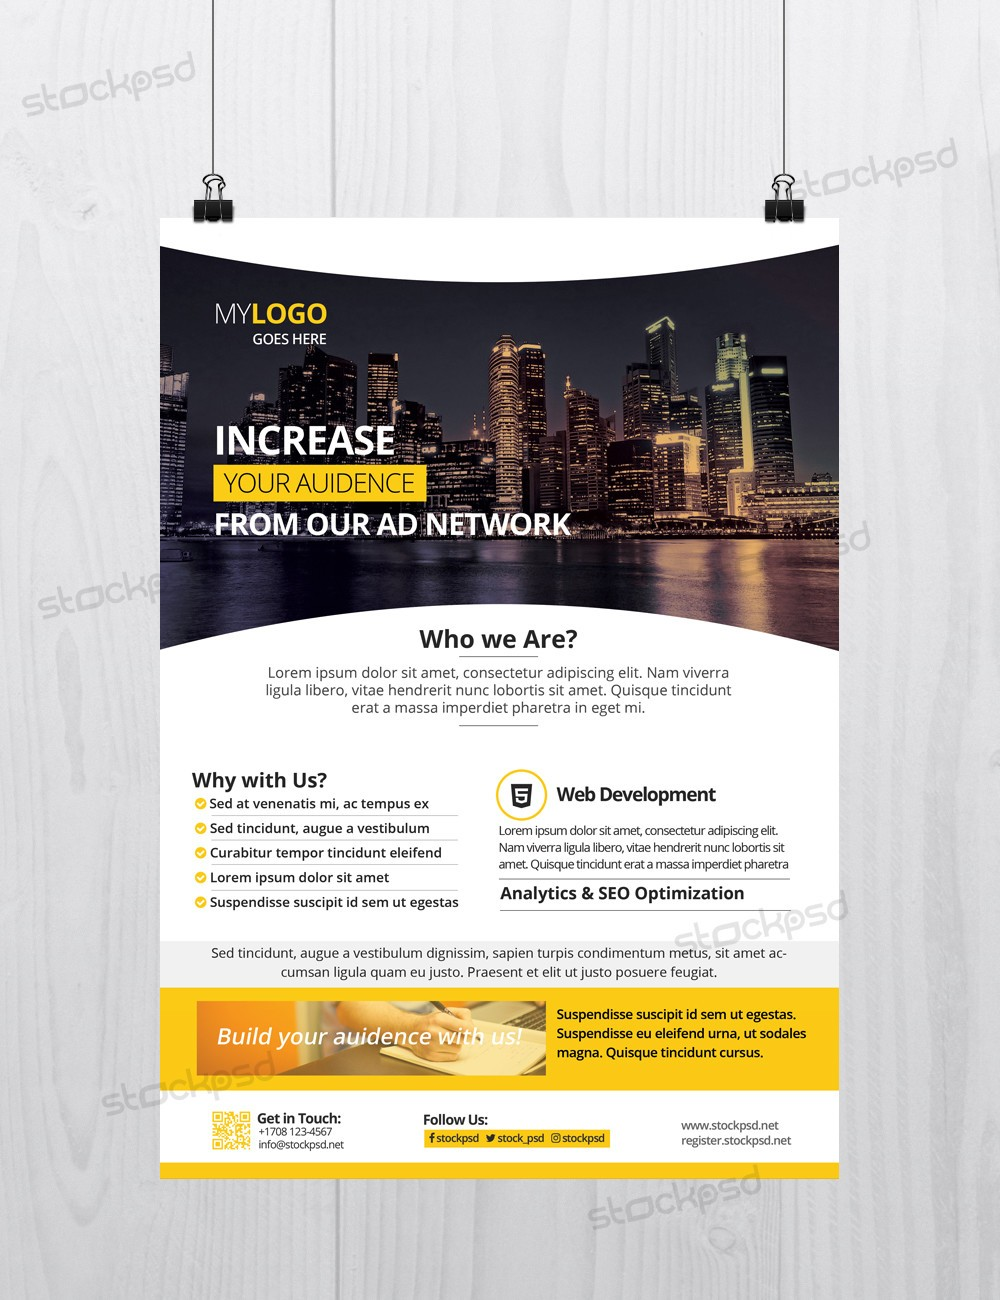 Stockpsd freebie templates corporate download free download corporate psd flyer template for free designed by stockpsd this flyer is suitable for any business or corporate psd file is in print ready accmission Gallery